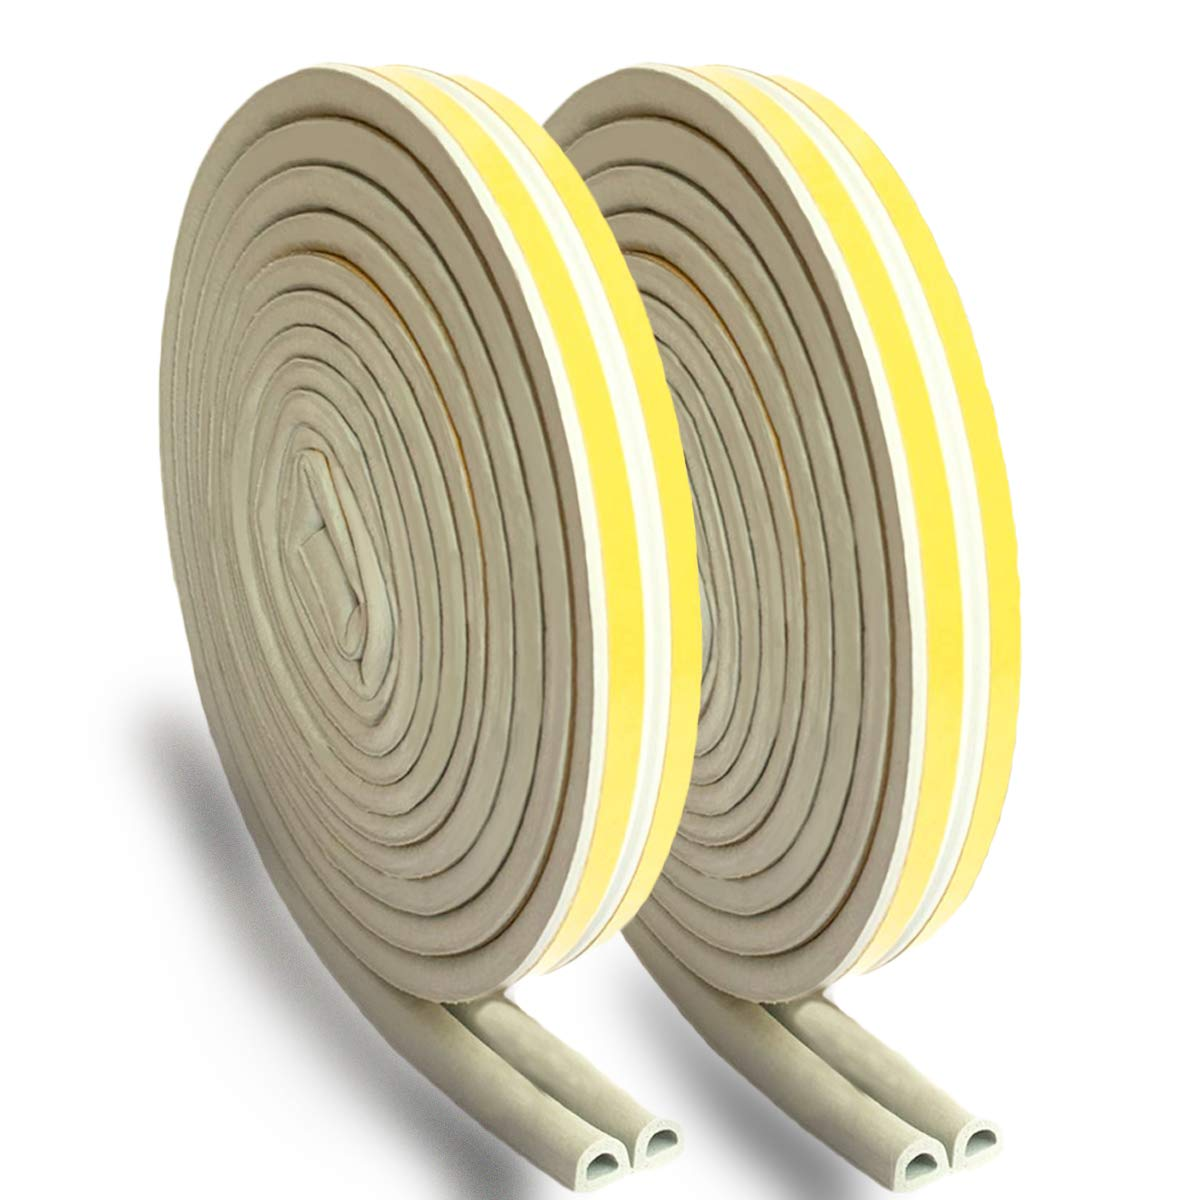 35mm, Translucent Weather Stripping Door Seal Strip Self Adhesive Silicone Door Draft Stopper Bottom Gap Replacement Strip Roll Weatherproof Soundproof for Door Window-Length 16.5Ft